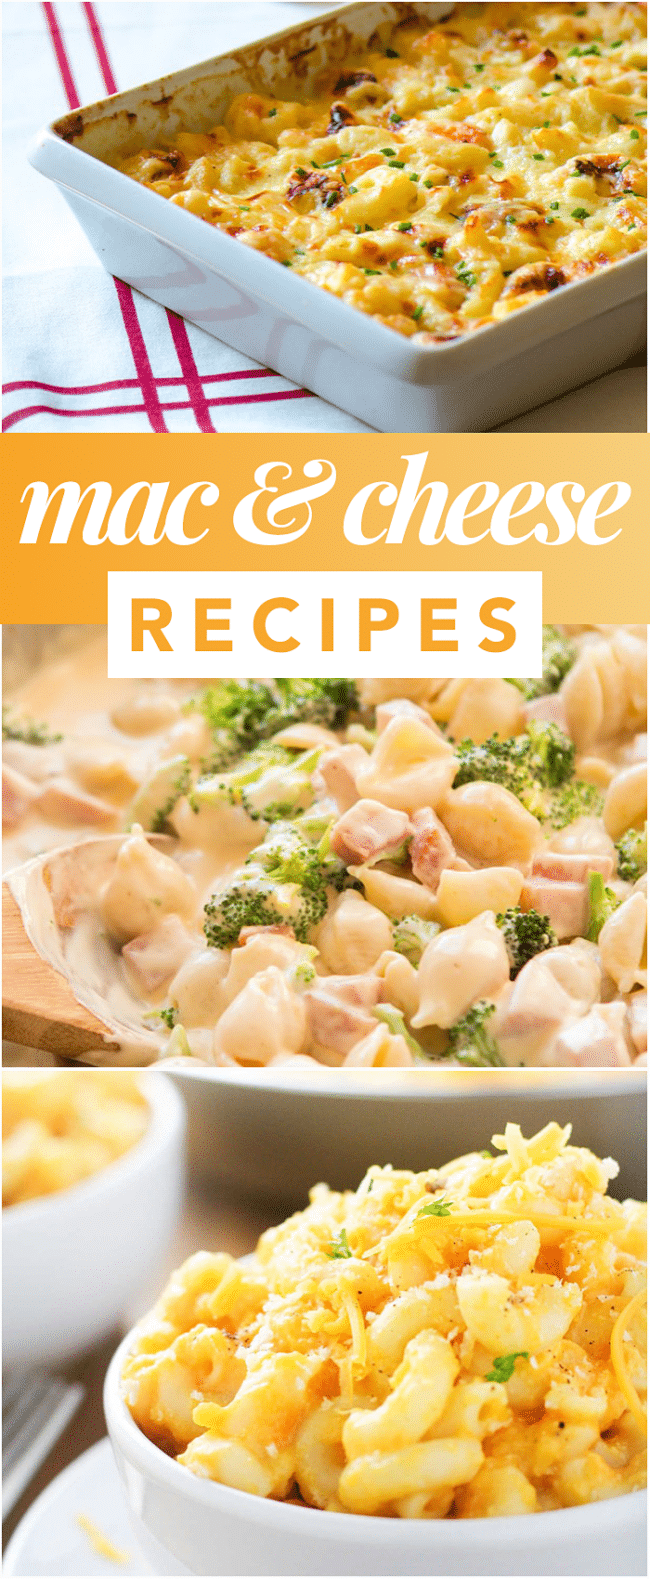 20 Incredible Mac and Cheese Recipes - Do you love macaroni and cheese? Check out this delicious roundup of my favorite mac and cheese recipes!